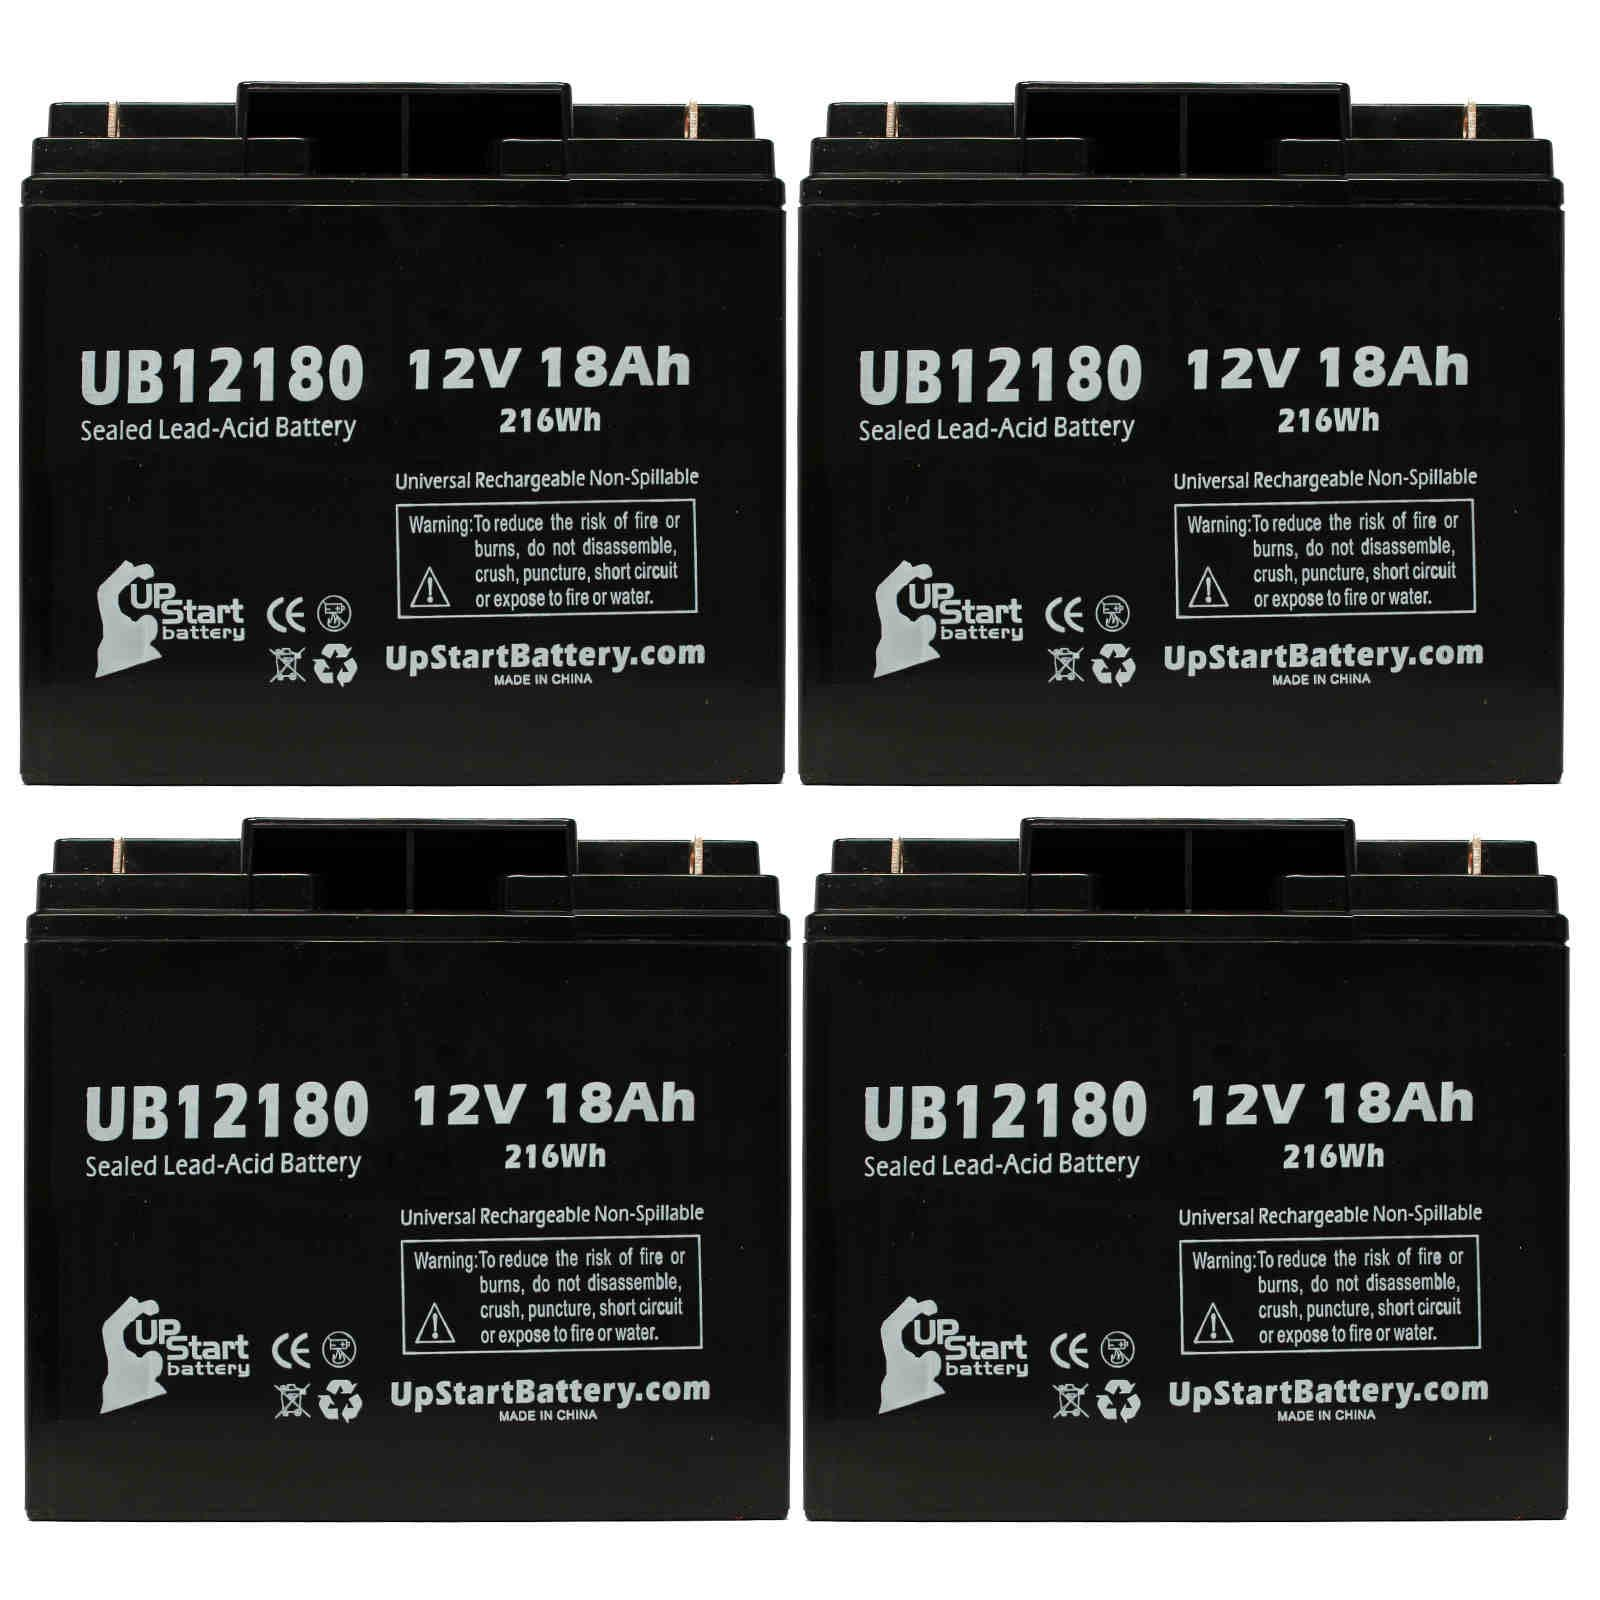 UpStart Battery 4x Pack - SEARS CRAFTSMAN DIEHARD PORTABLE POWER 1150 Battery - Replacement UB12180 SLA Battery (12V, 18Ah, T4 Terminal) at Sears.com